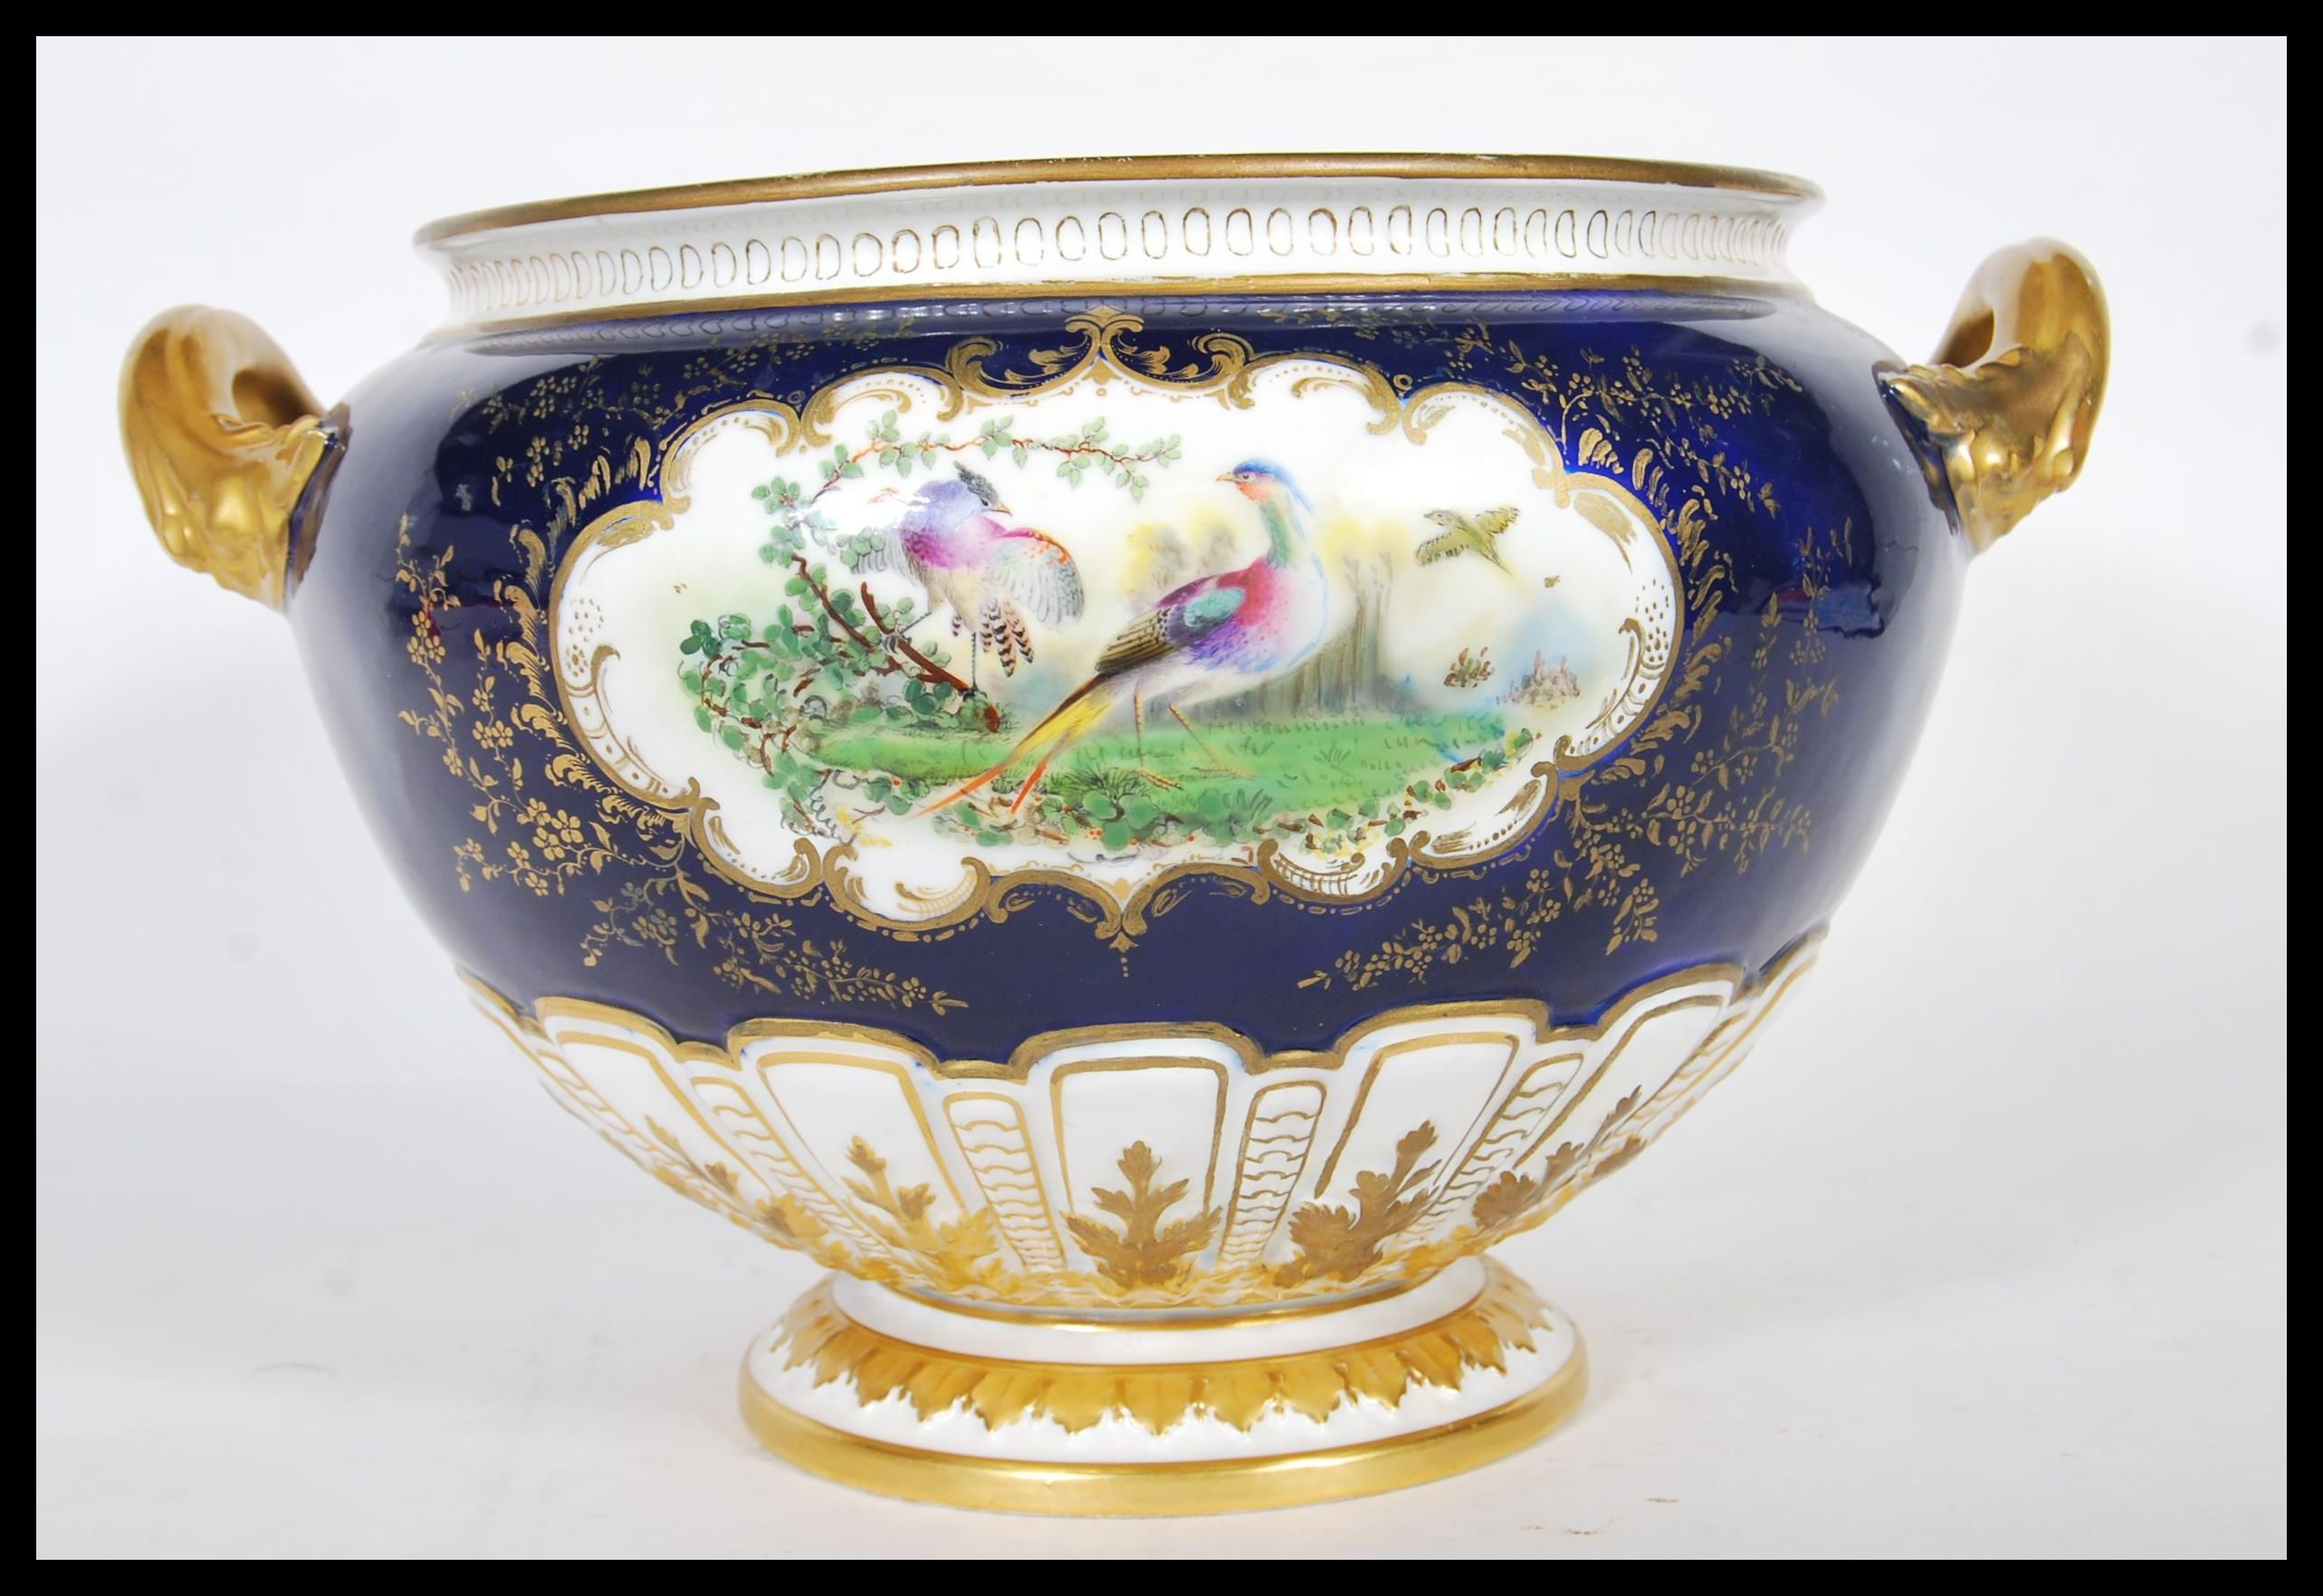 Lot 137 - A late 19th Century Royal Worcester soup tureen of